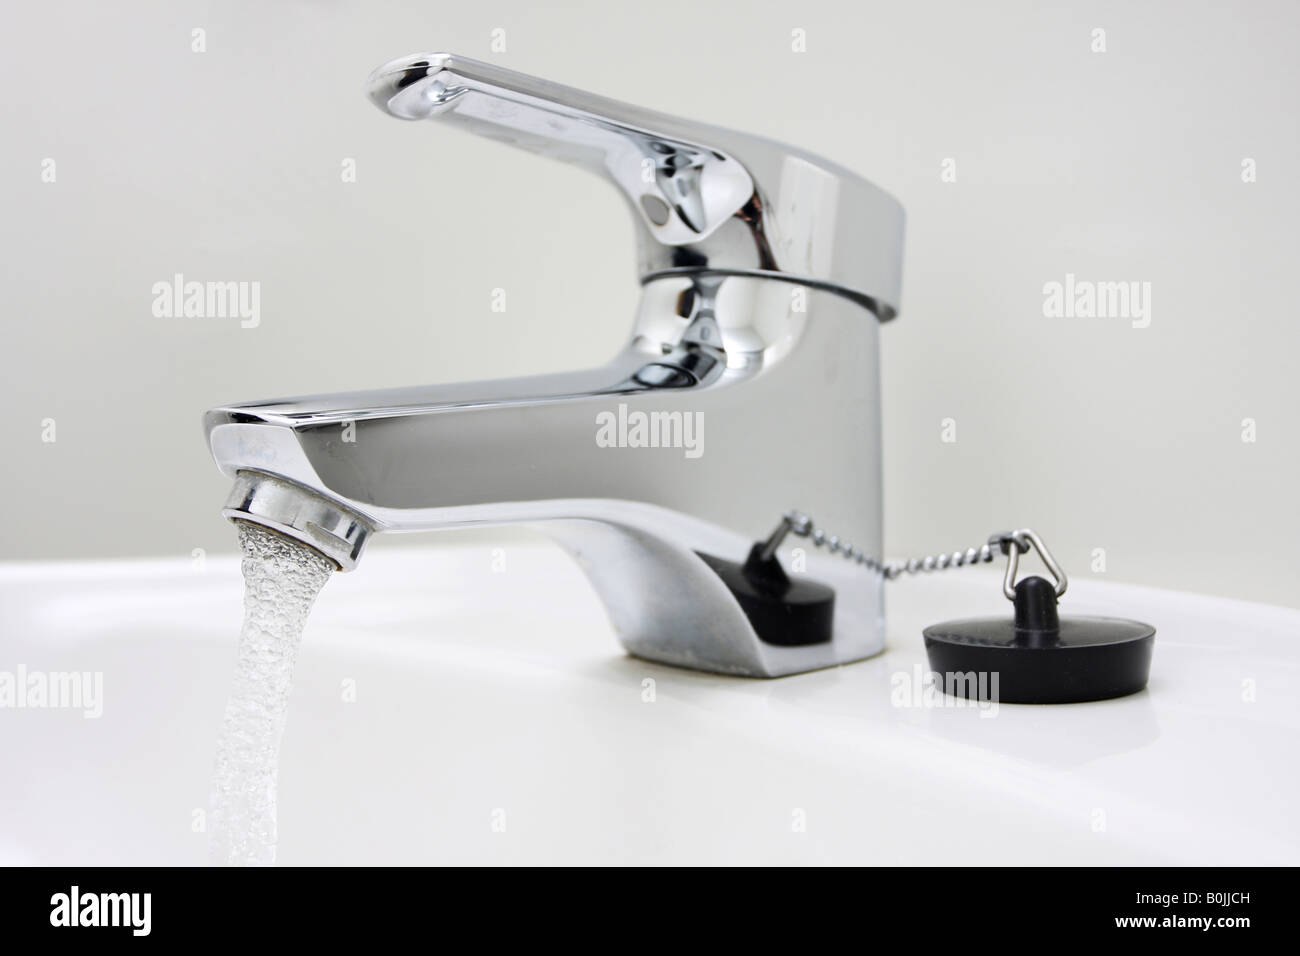 chrome faucet on a sink running water - Stock Image